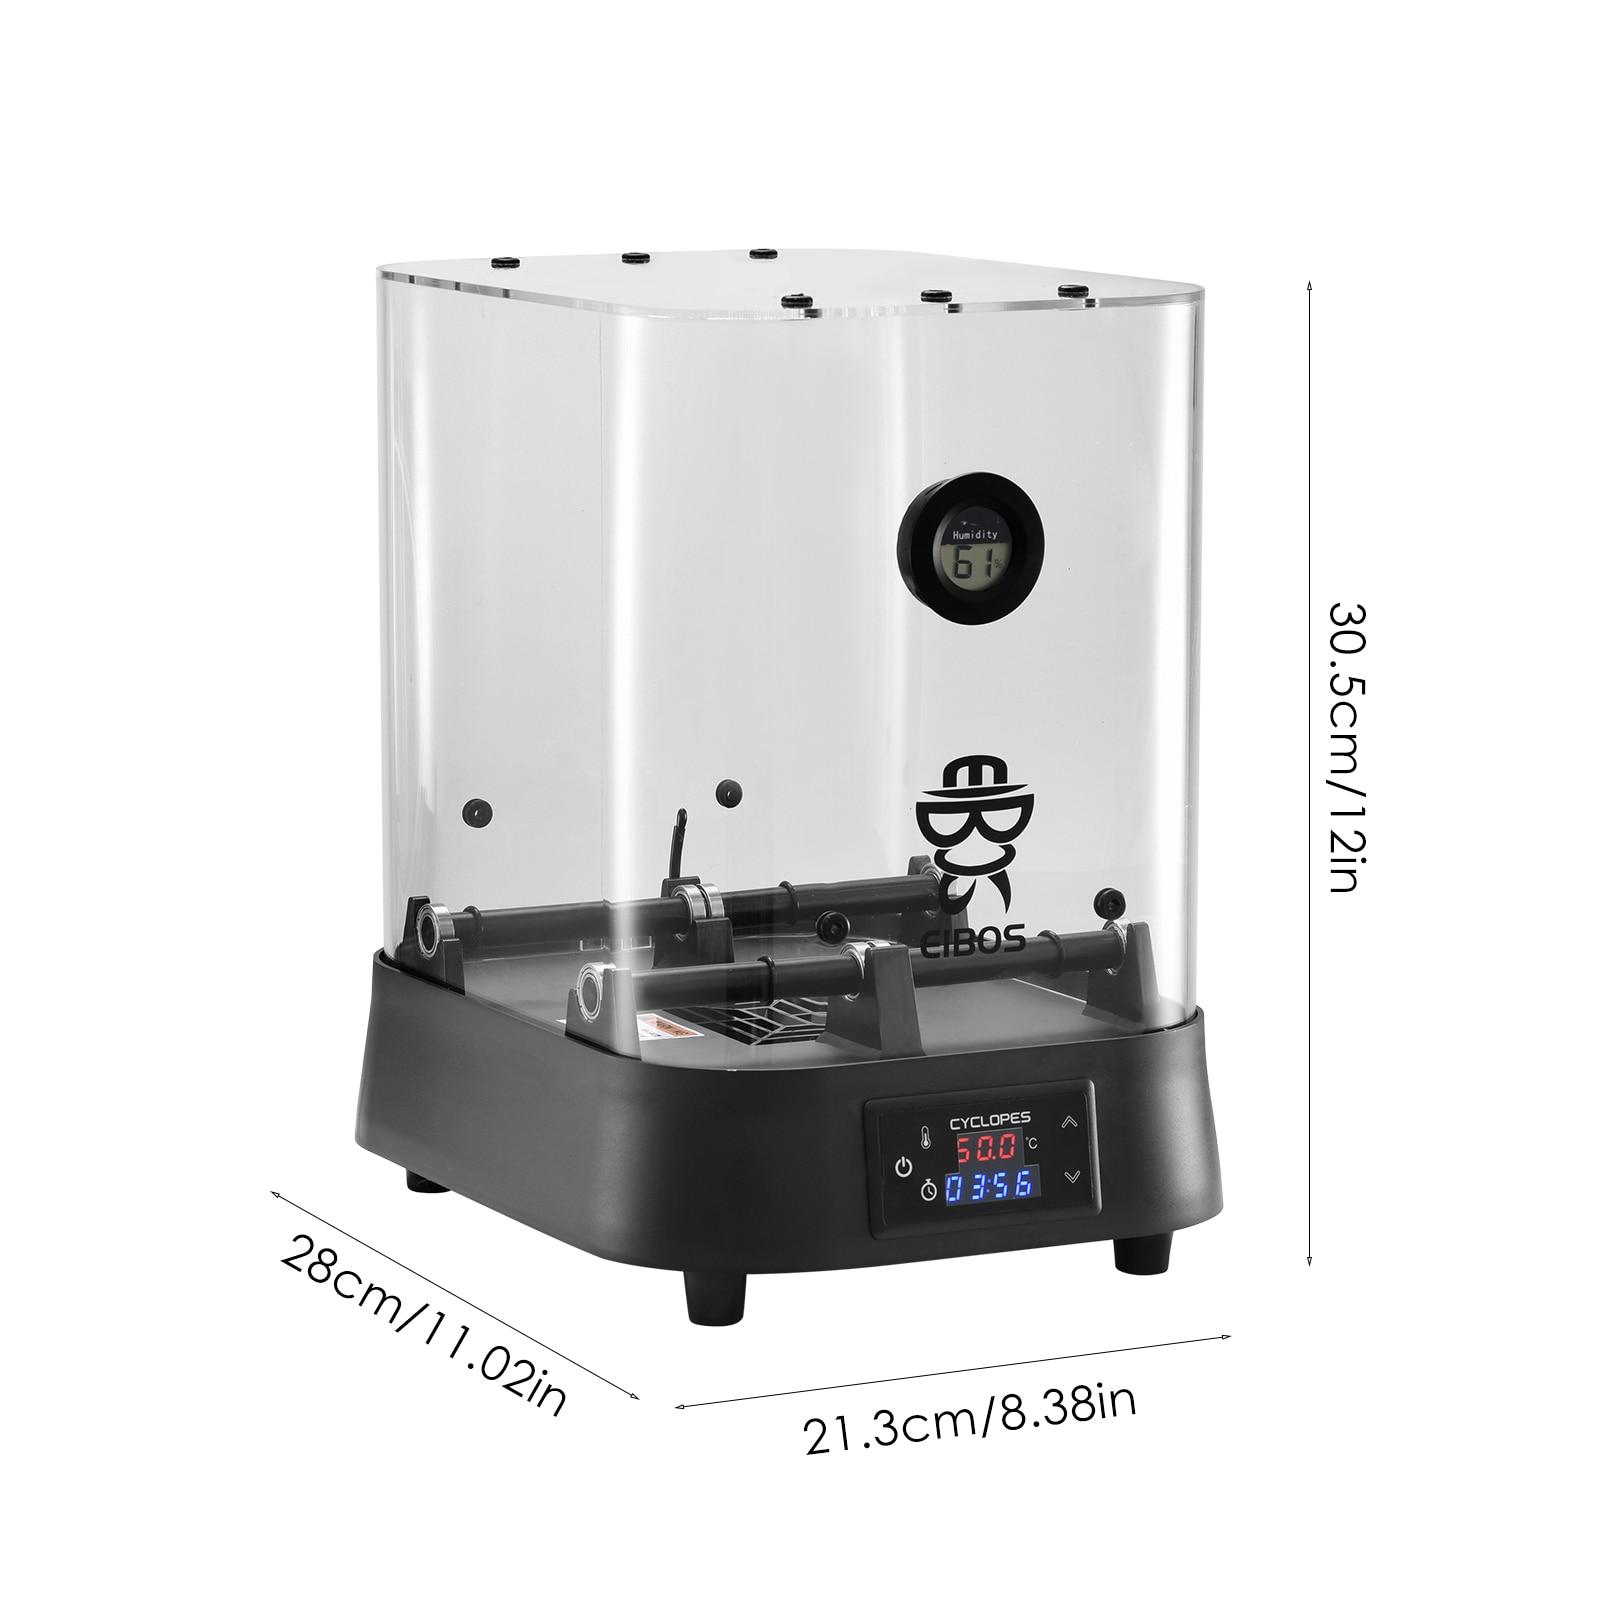 EIBOS 3D Filament Drying Box Adjustable Temperature Time For 1.75 Mm 2.85 Mm And 3.00 Mm Keeps Filament Dry During Printing enlarge